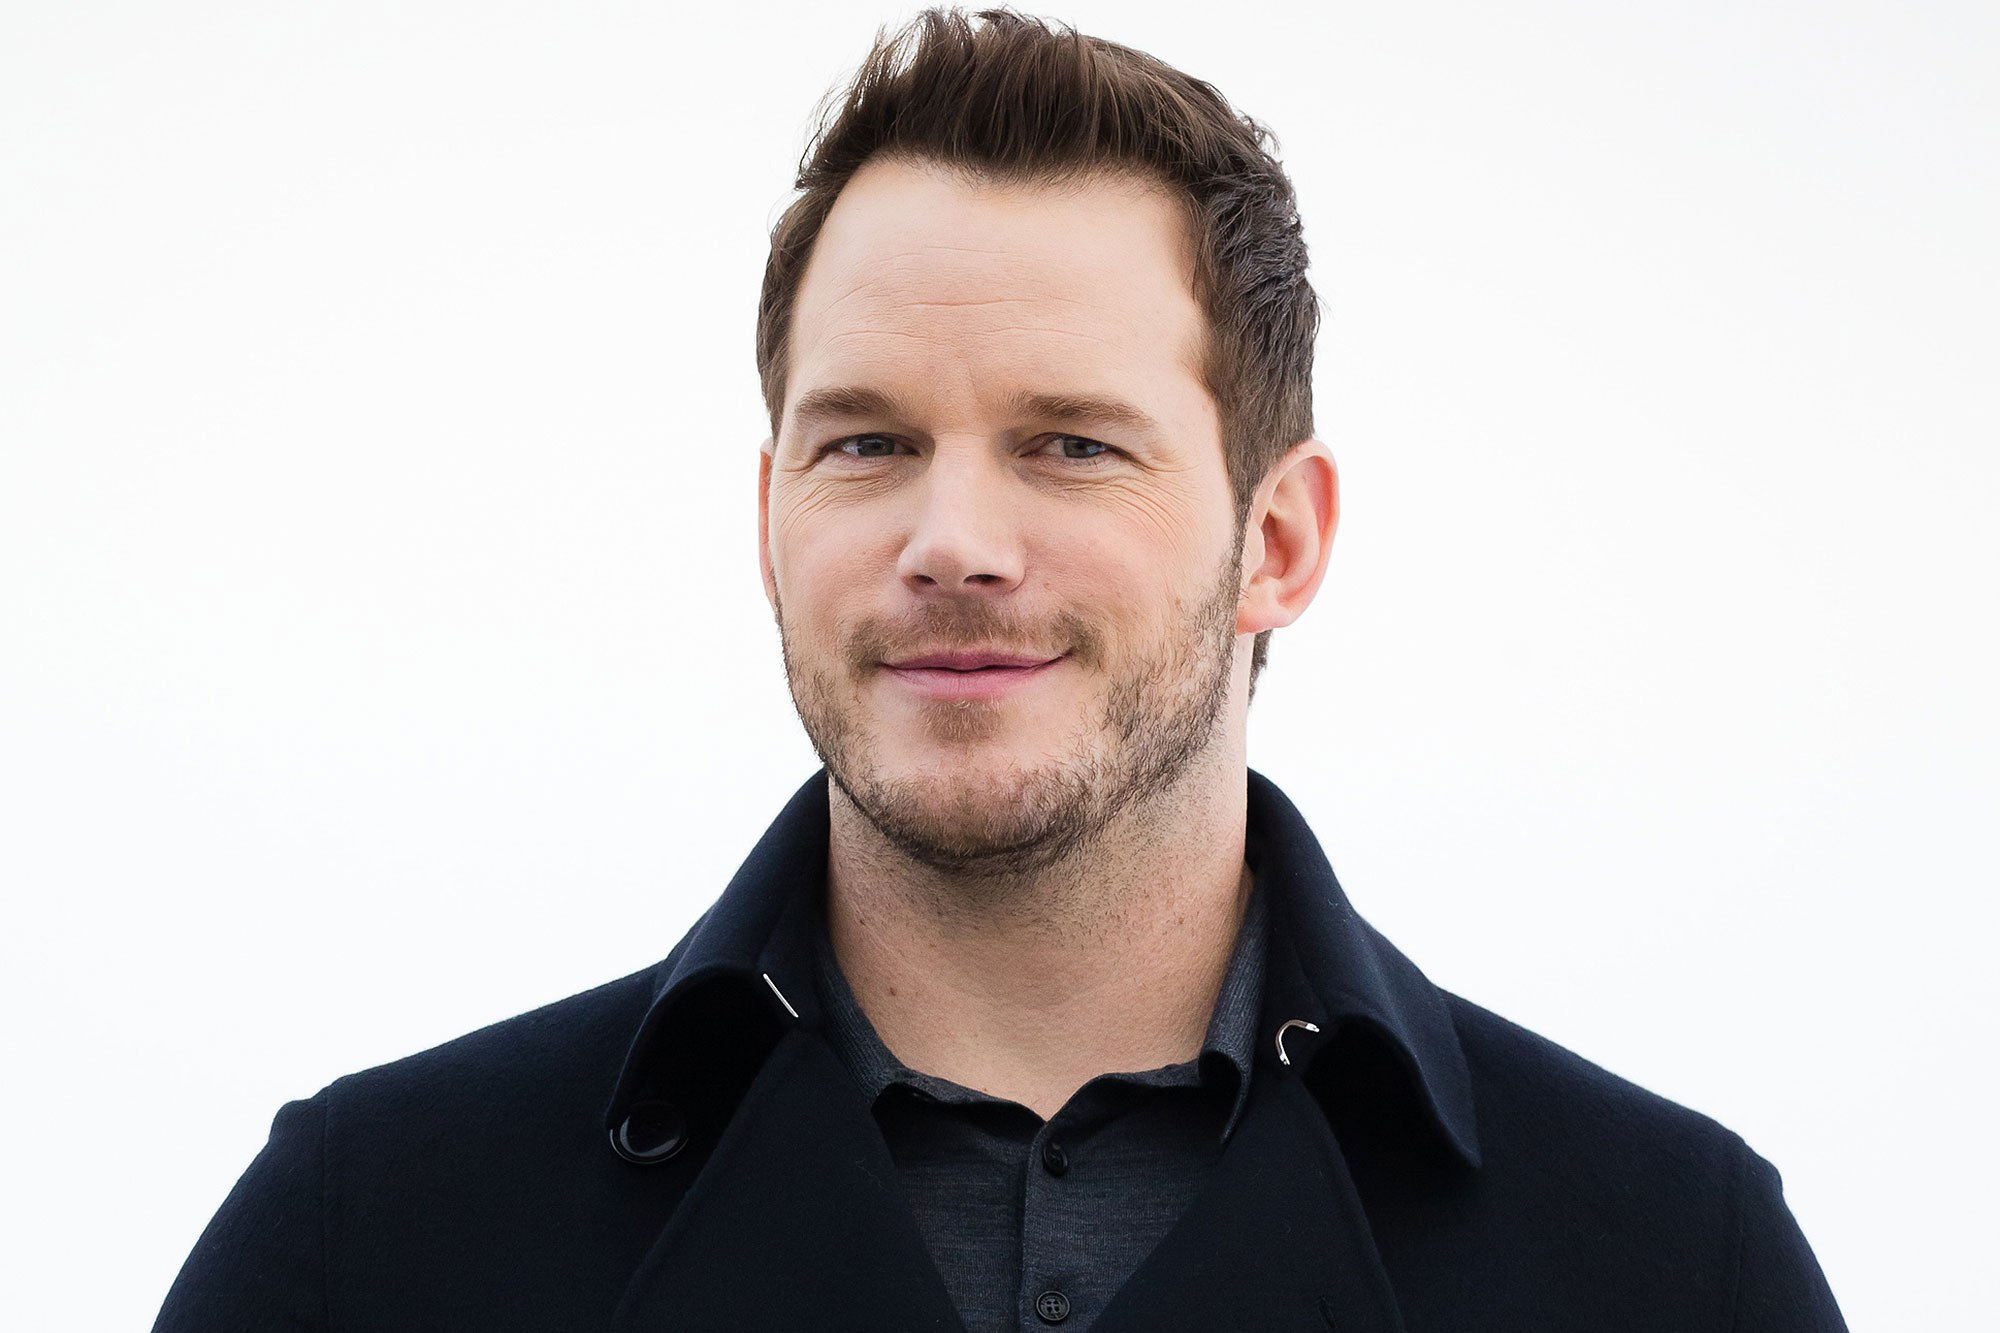 Actor Chris Pratt Attacked for Sharing his Christian Faith.